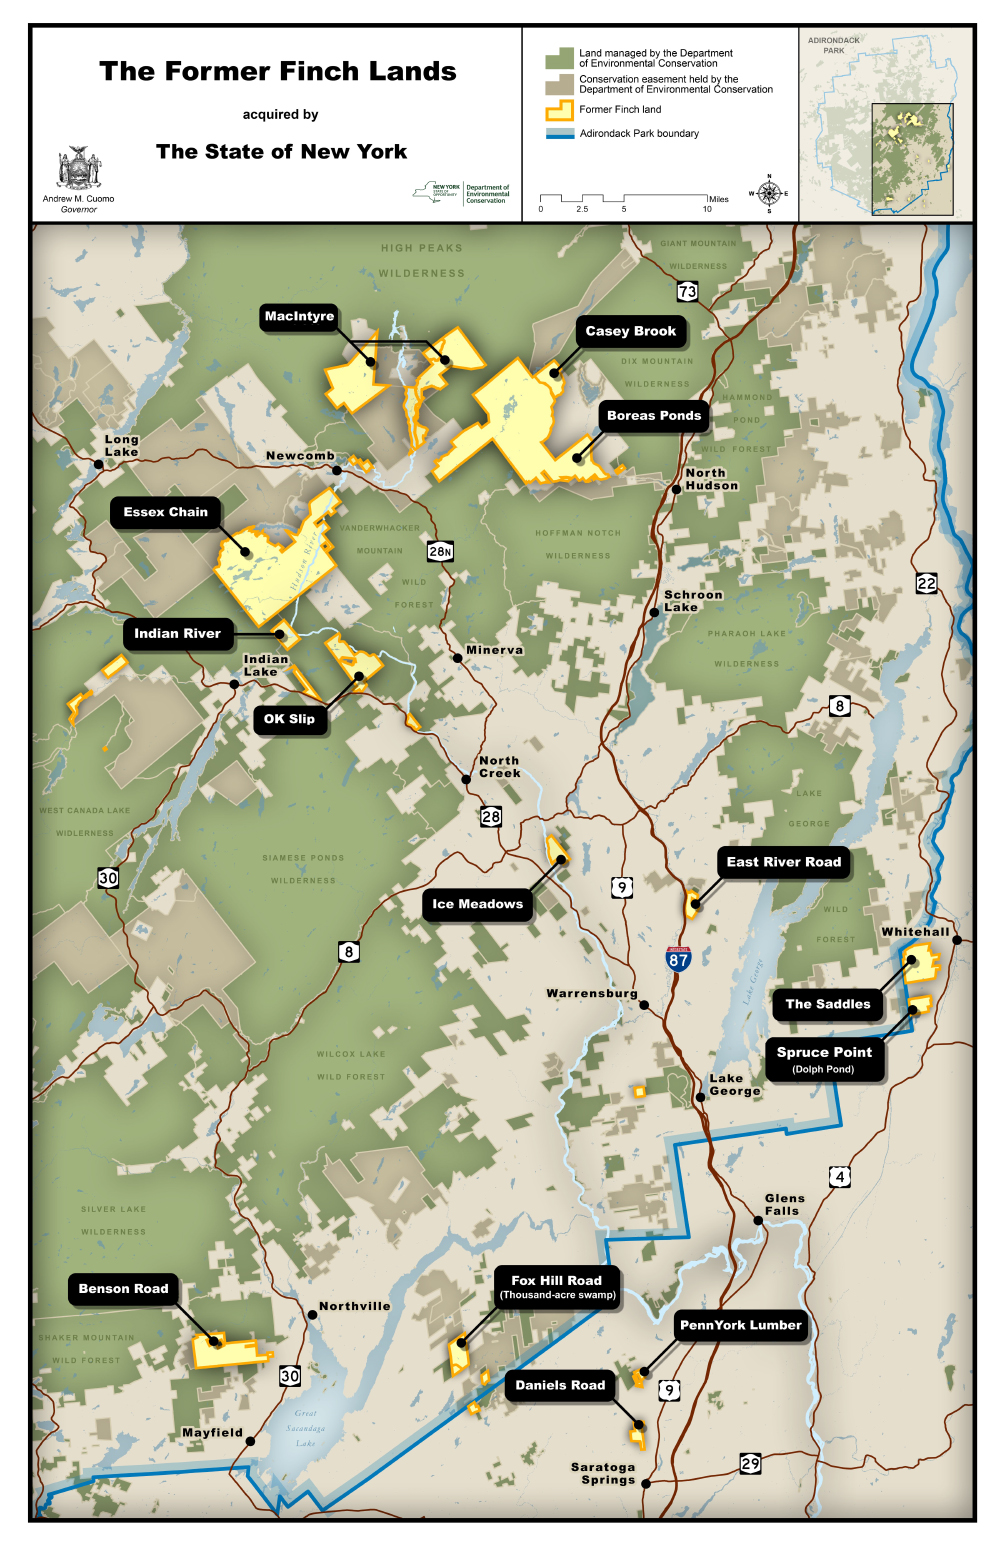 map showing locations of former Finch and TNC lands to be acquired by NYS